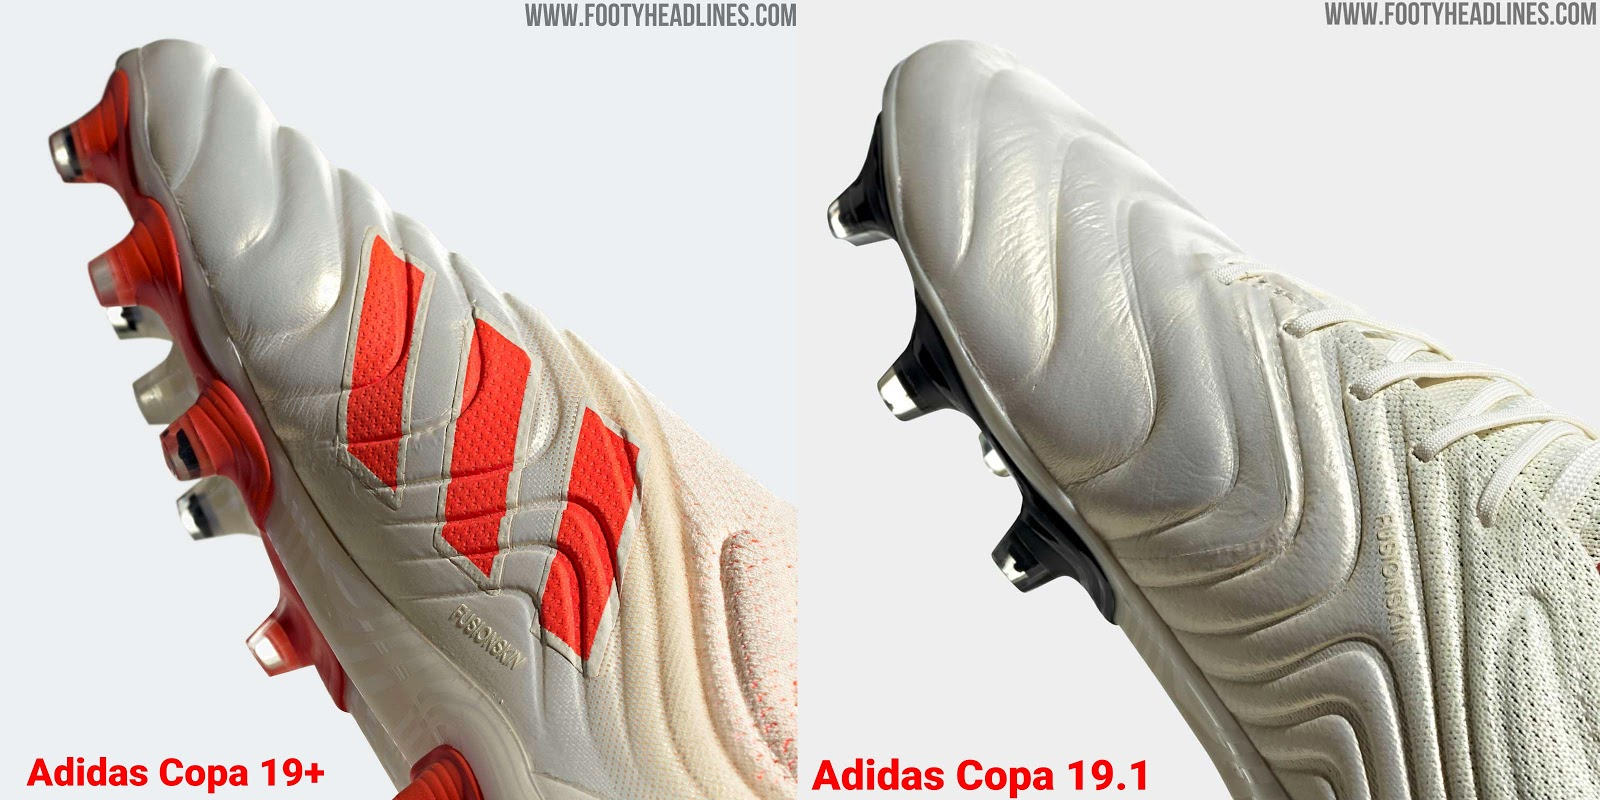 low priced 9a6cd 343bc Adidas Copa 19+ vs Adidas Copa 19.1 Soccer Cleats - Overall